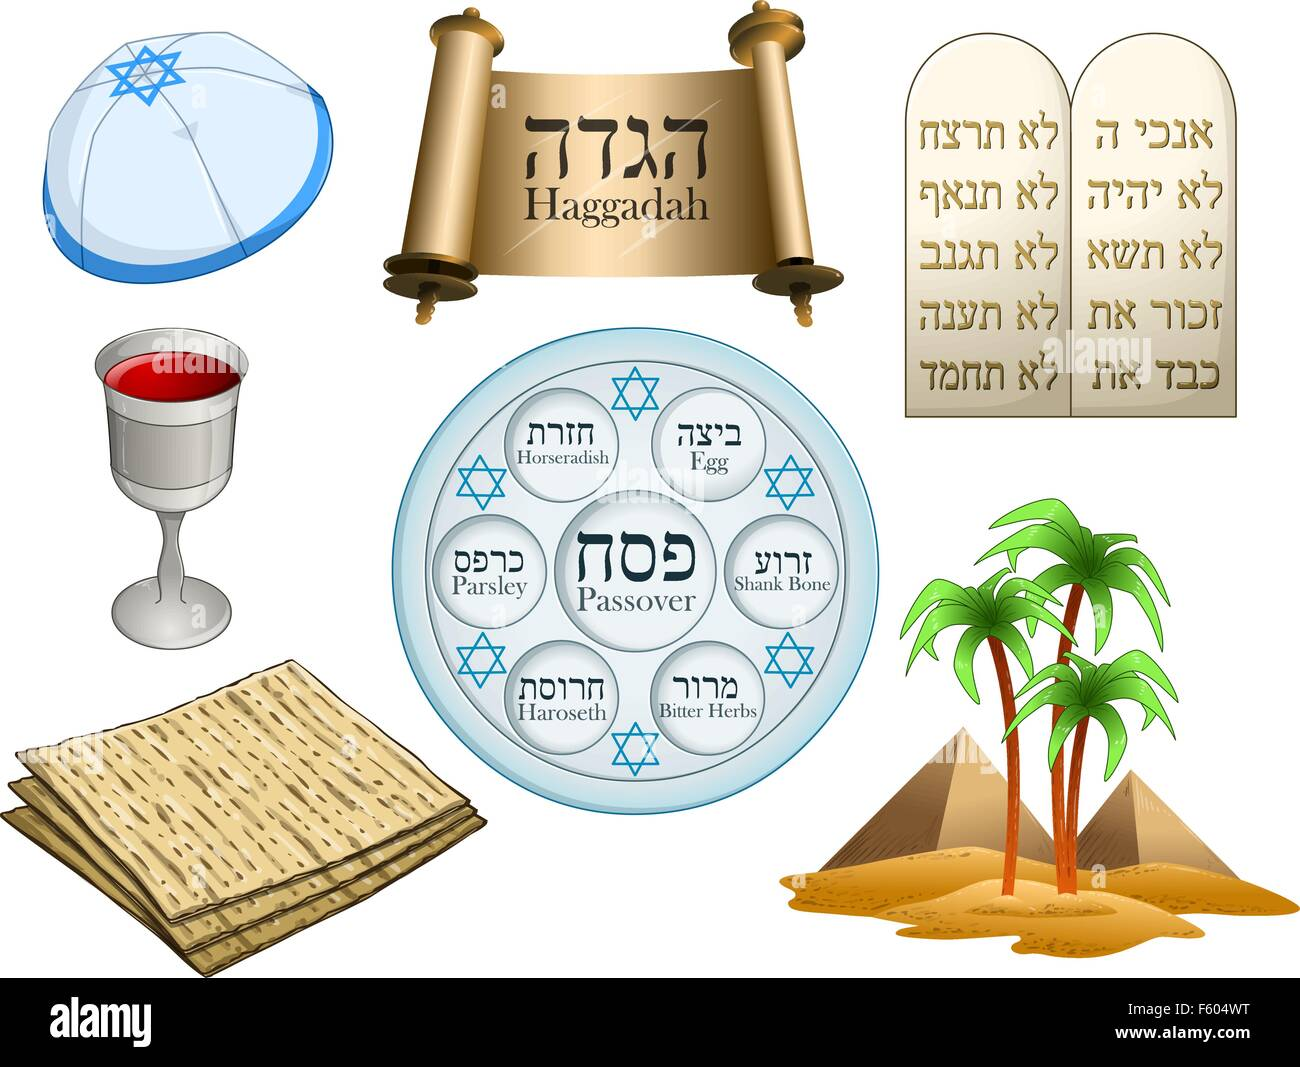 Vector illustration of objects related to the Jewish holiday Passover. - Stock Vector